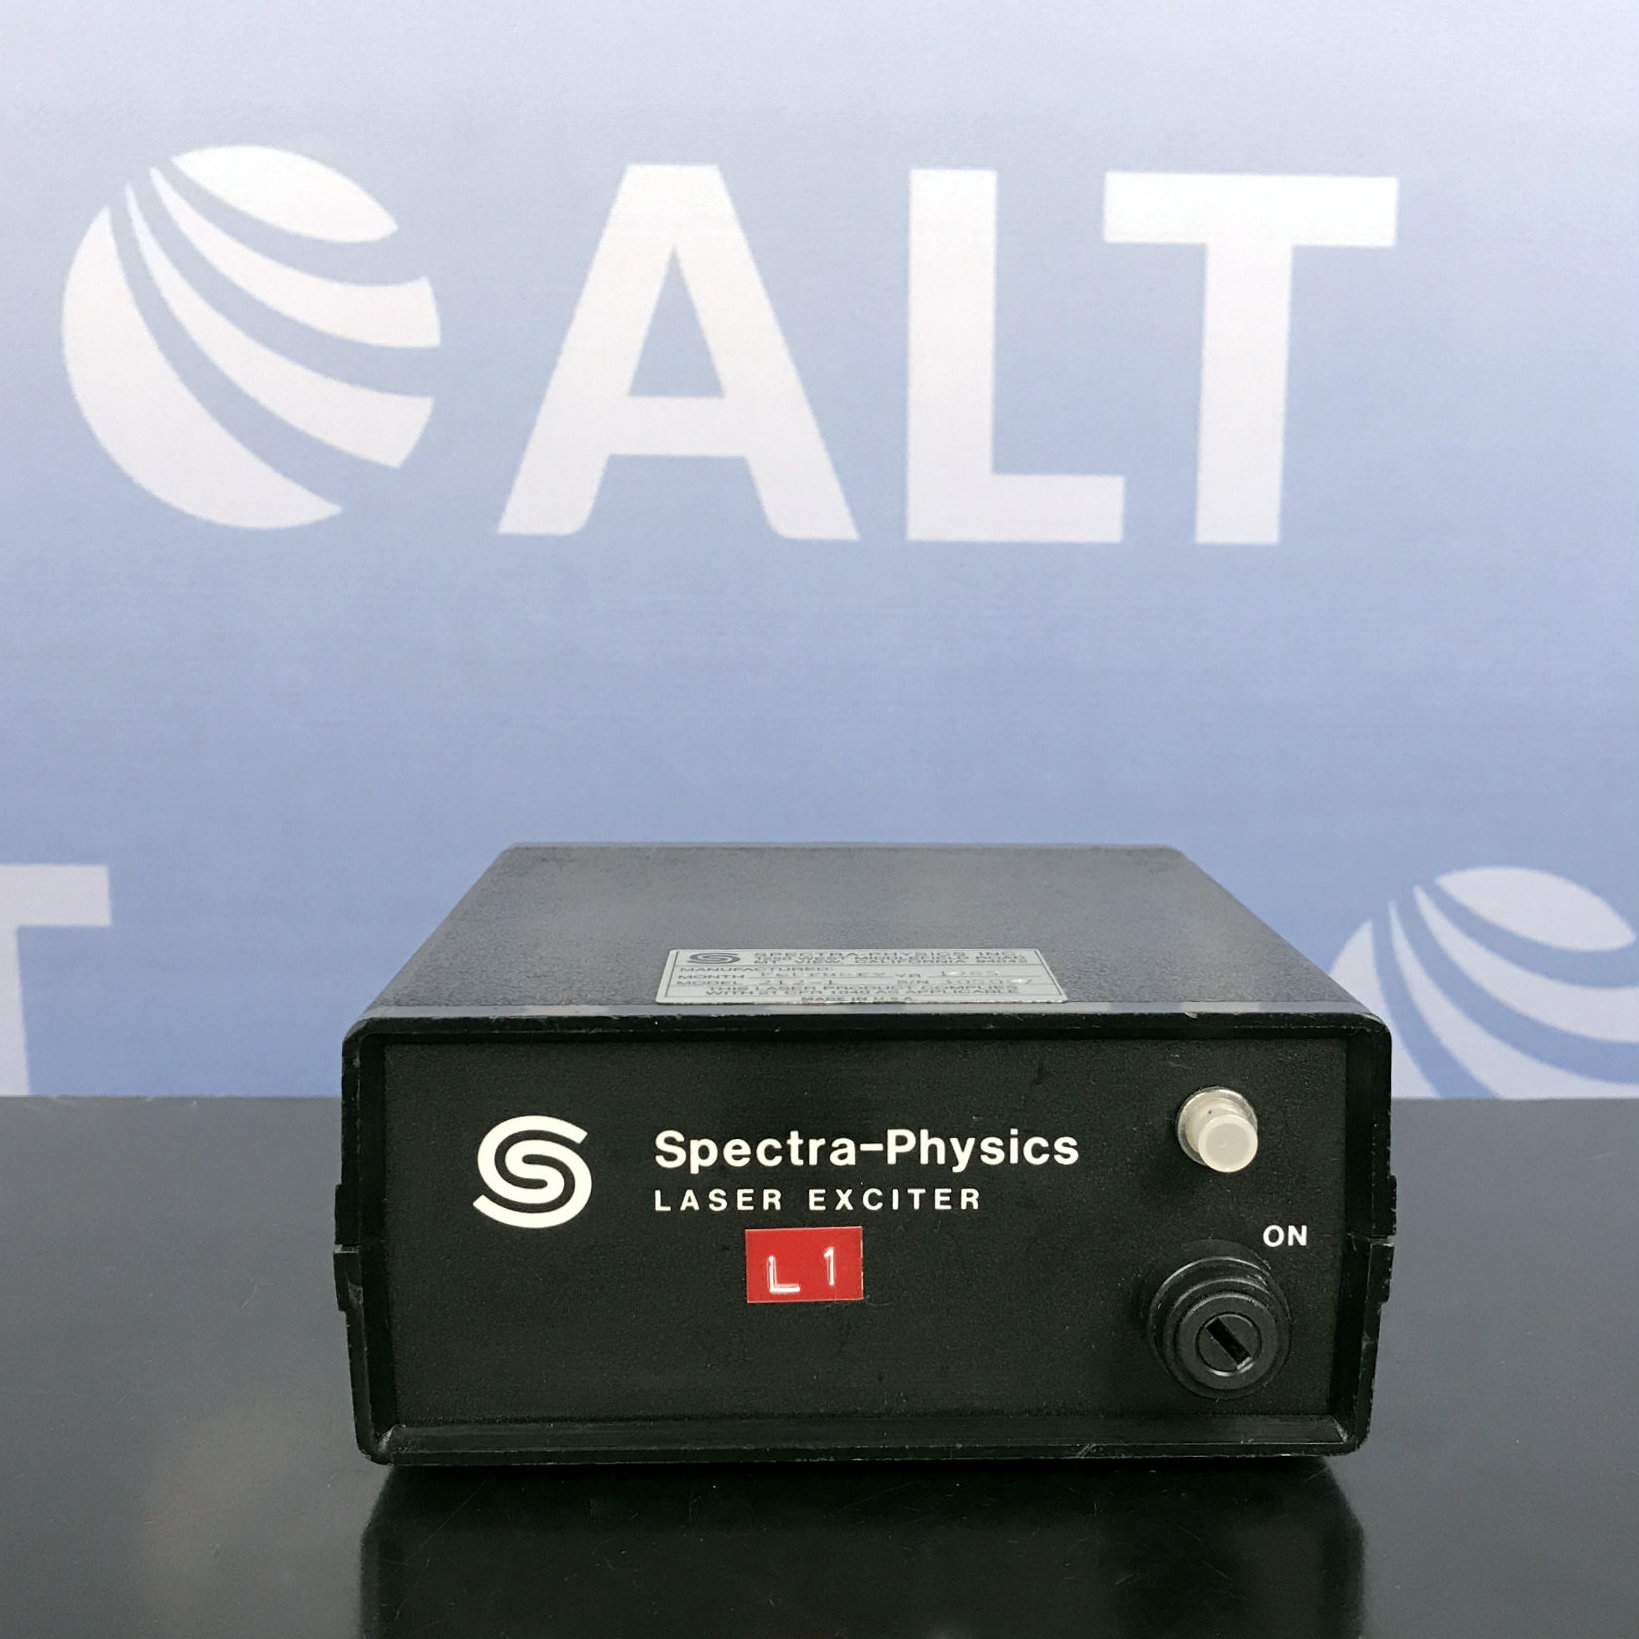 Spectra-Physics 212-1 Laser Exciter With Key Image